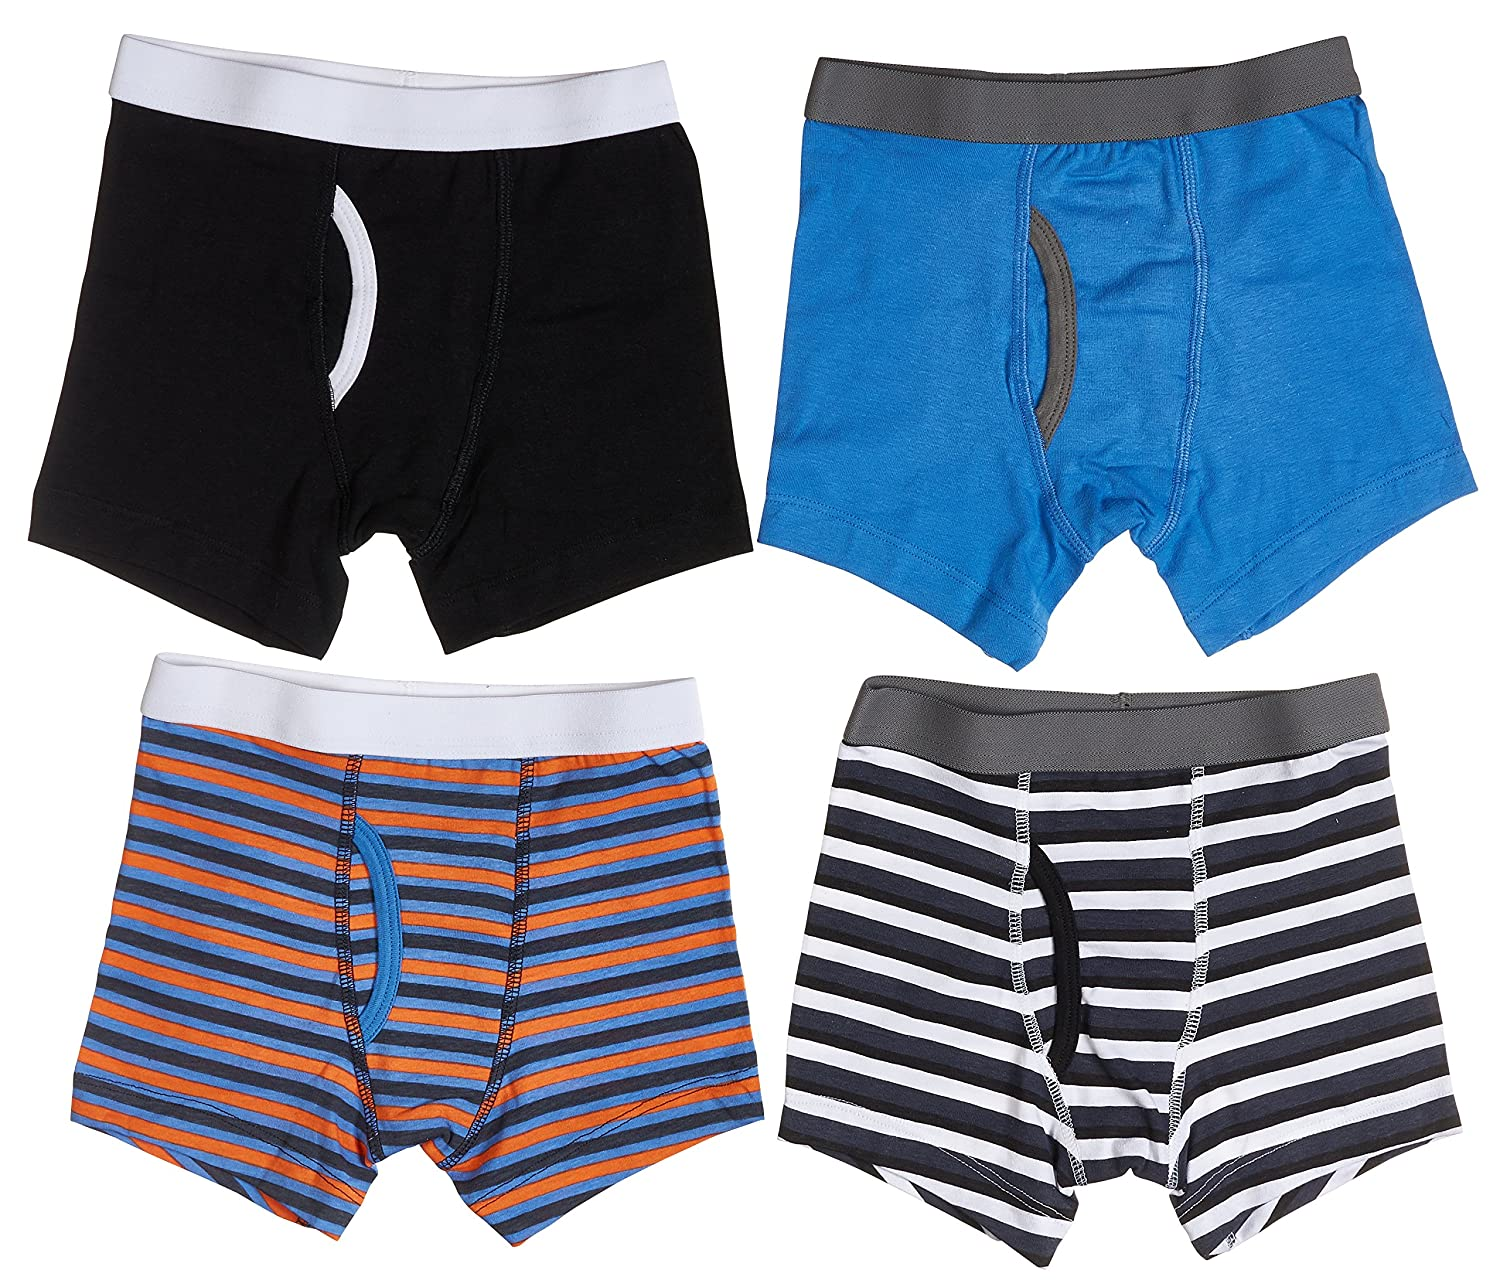 Trimfit Boys Stripes Boxer Briefs 4-Pack 79111